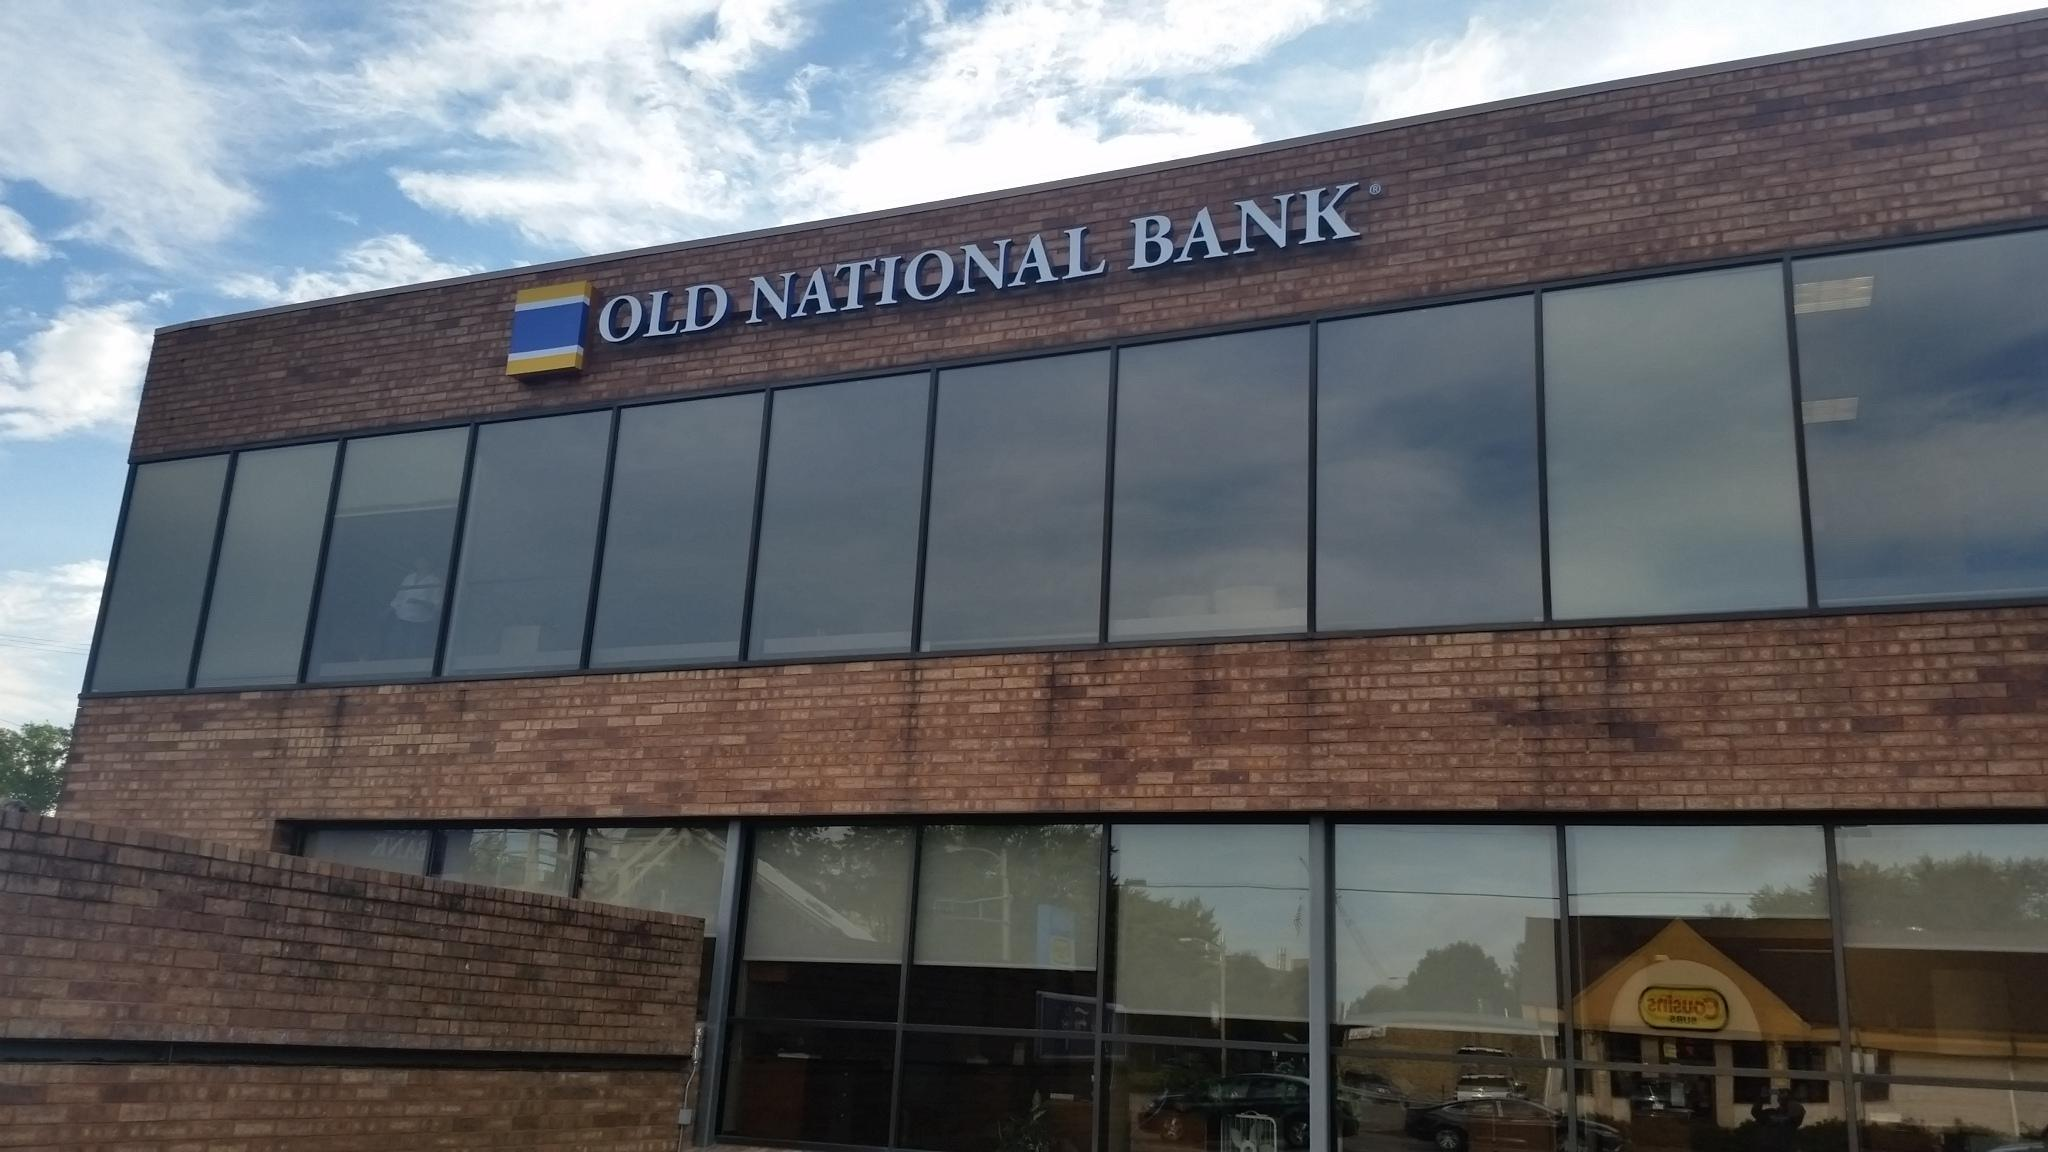 Old national bank 640 division st stevens point for Department of motor vehicles stevens point wisconsin